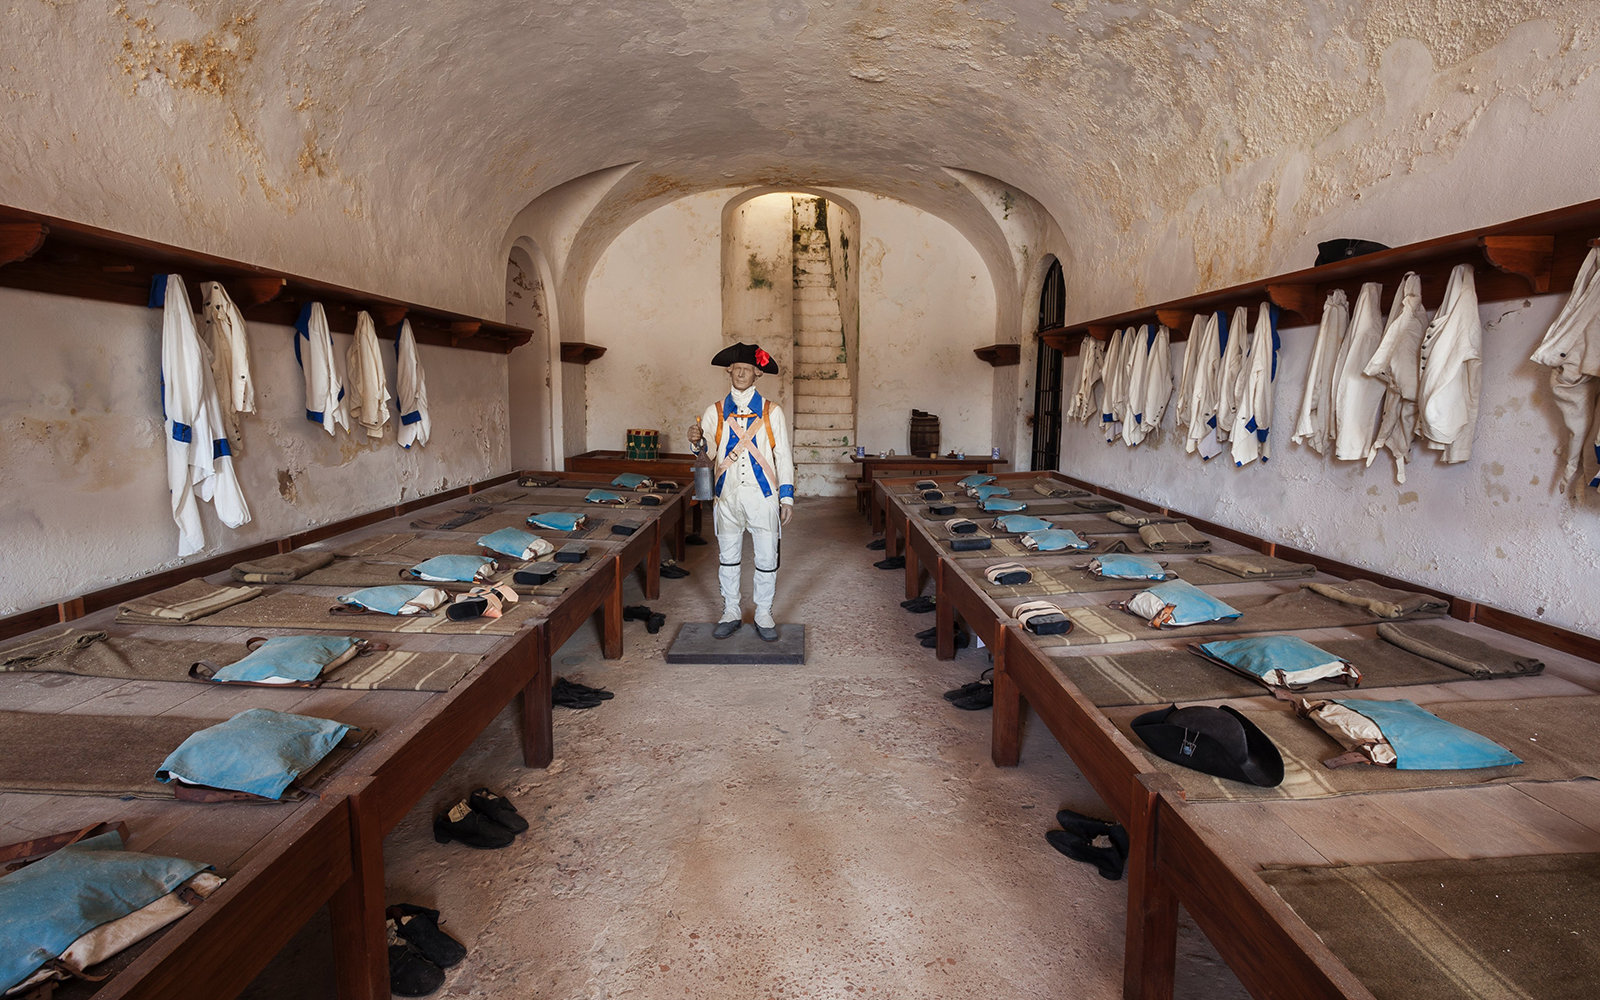 Soldiers Sleeping Quarters, Castillo San Cristobal, San Juan National Historic Site, a national park in Old San Juan, Puerto Rico. (Photo by: Universal Images Group via Getty Images)